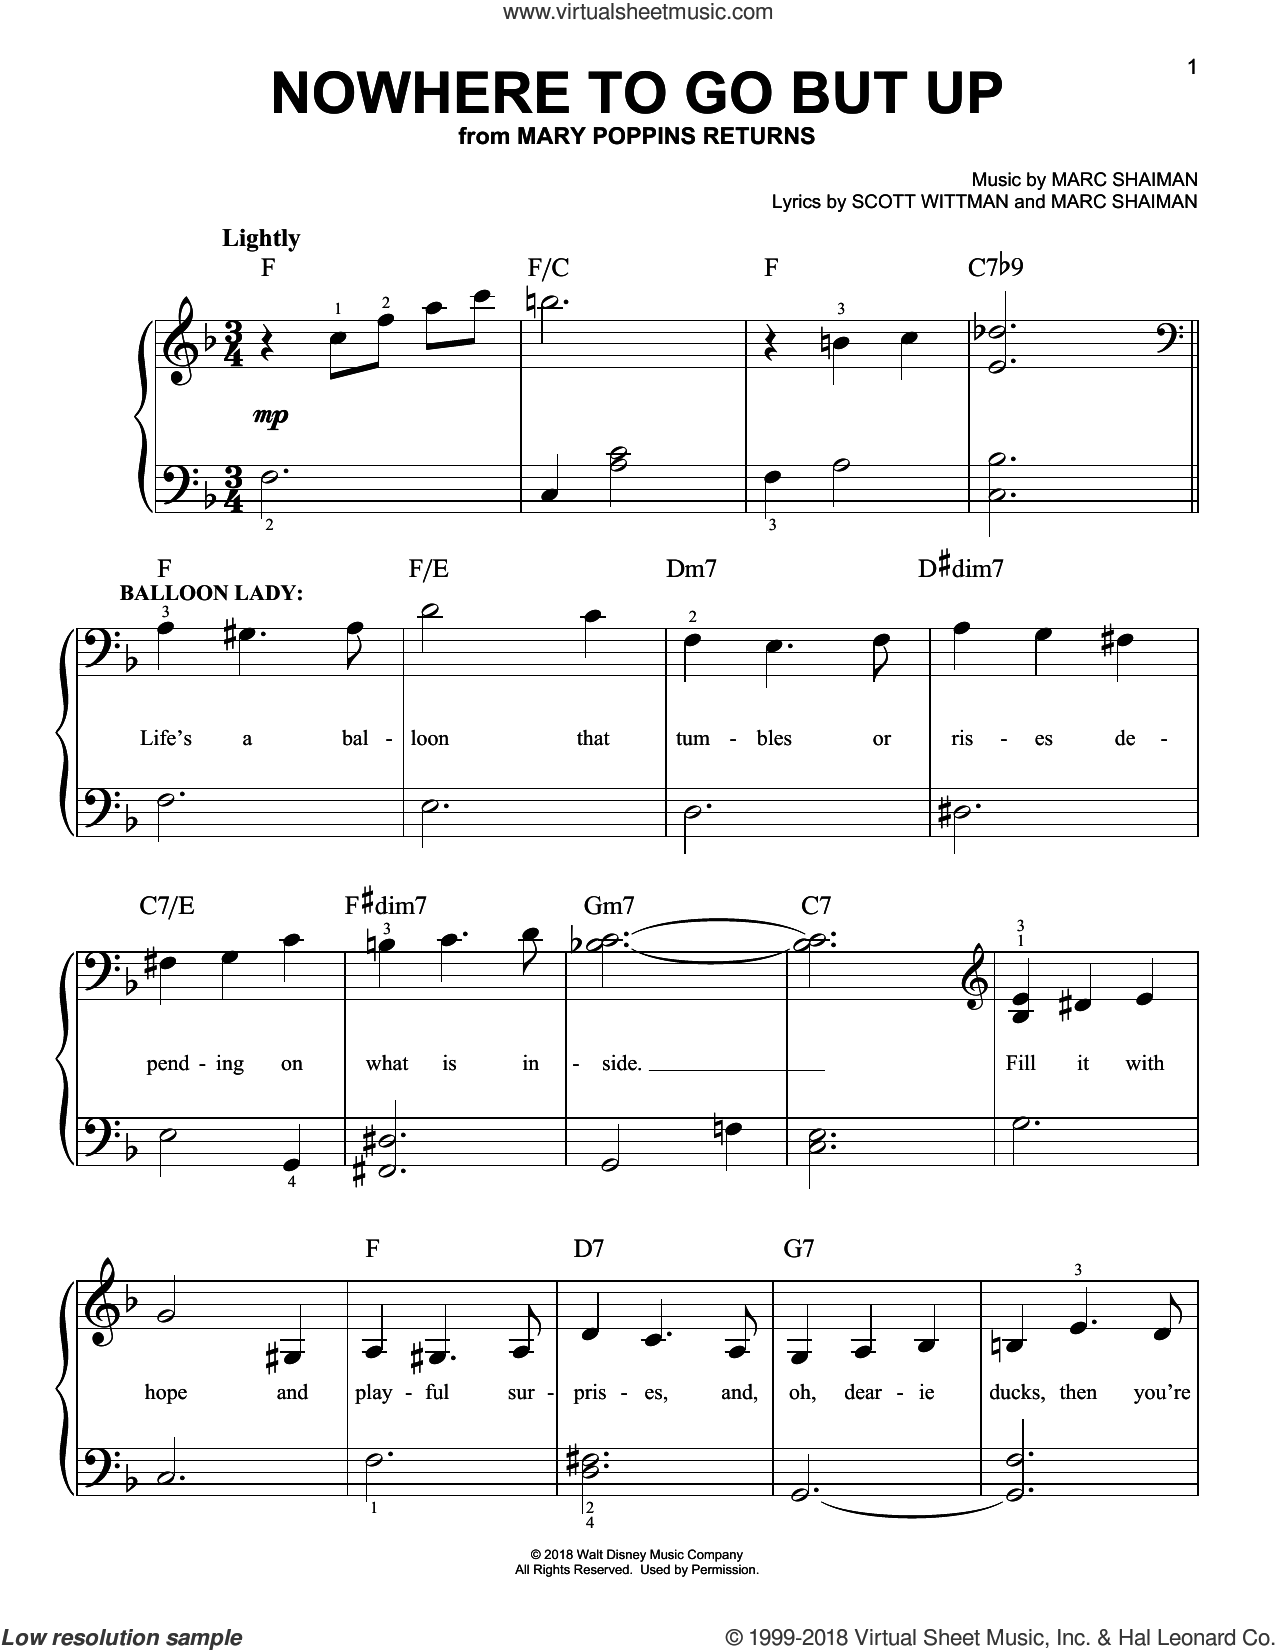 Nowhere To Go But Up (from Mary Poppins Returns) sheet music for piano solo by Angela Lansbury & Company, Marc Shaiman and Scott Wittman, easy skill level